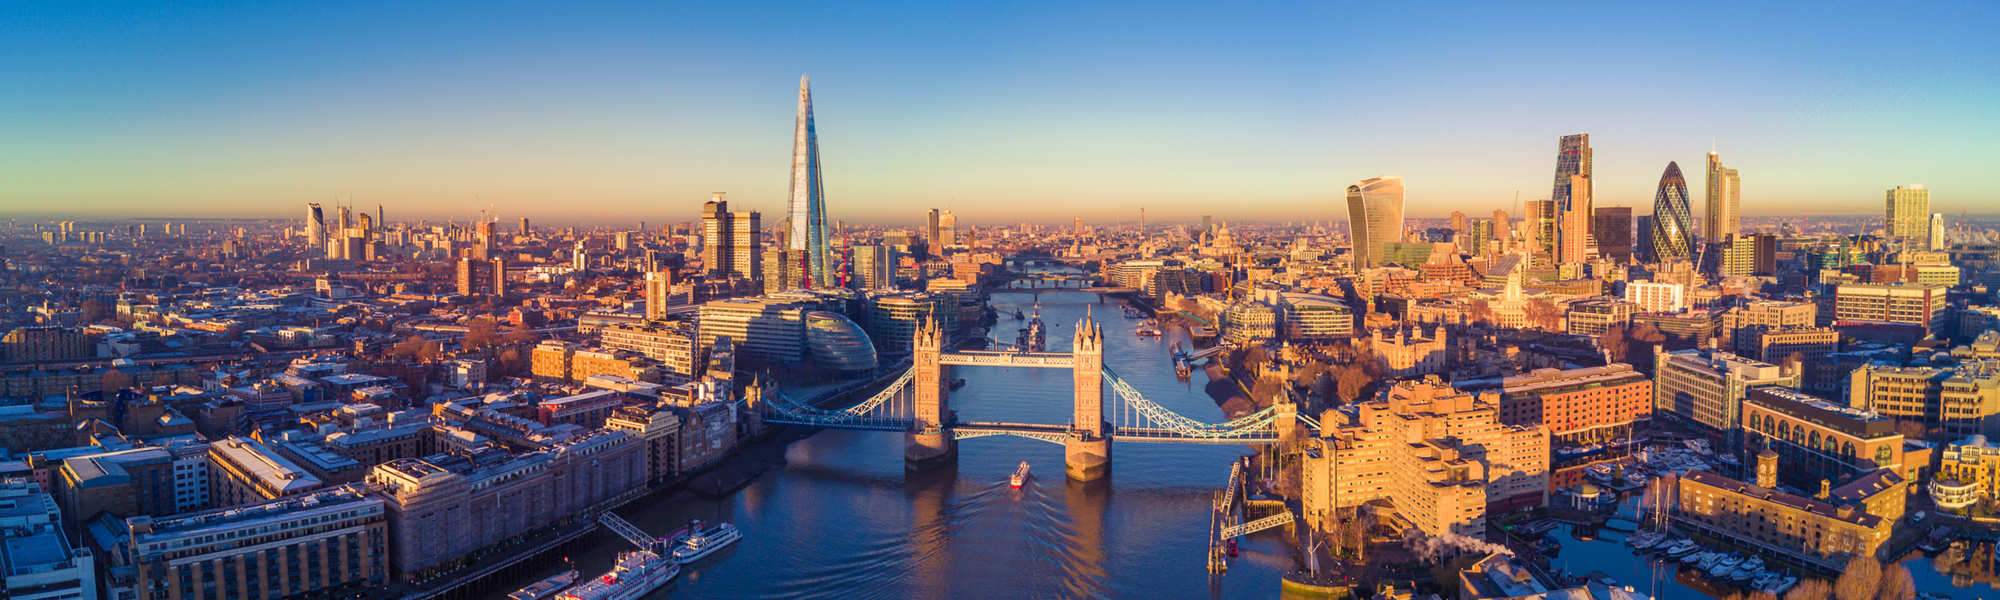 Asite res[onse to COVID-19 and London during the CoronaVirus Pandemic